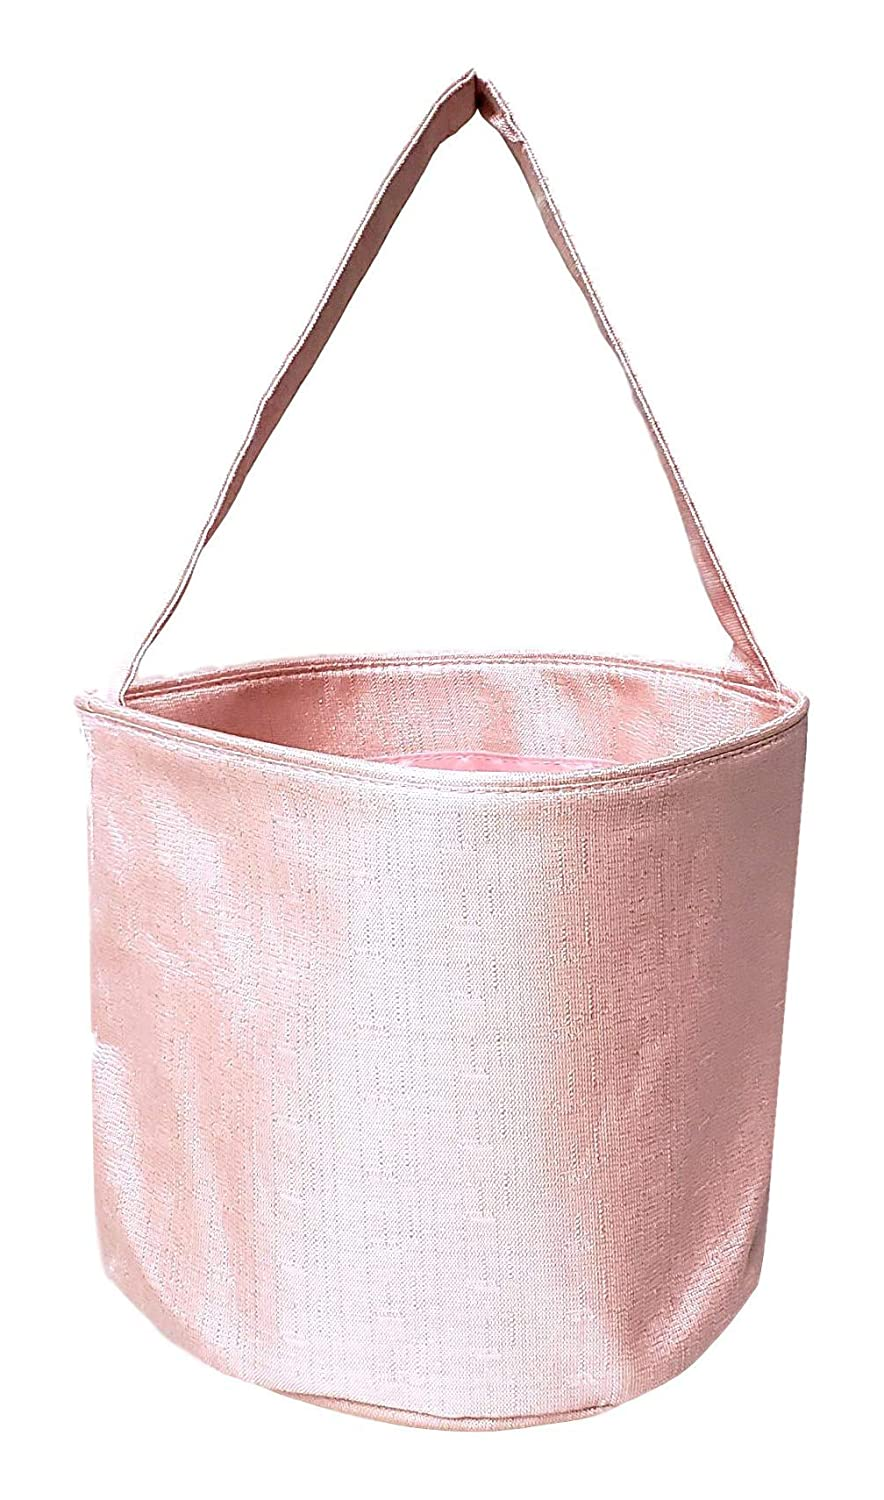 Girls Shimmer Fabric Easter Egg Basket Bucket Tote Bag Gift for Kids Pink Purple - Can be Personalized (Pink)